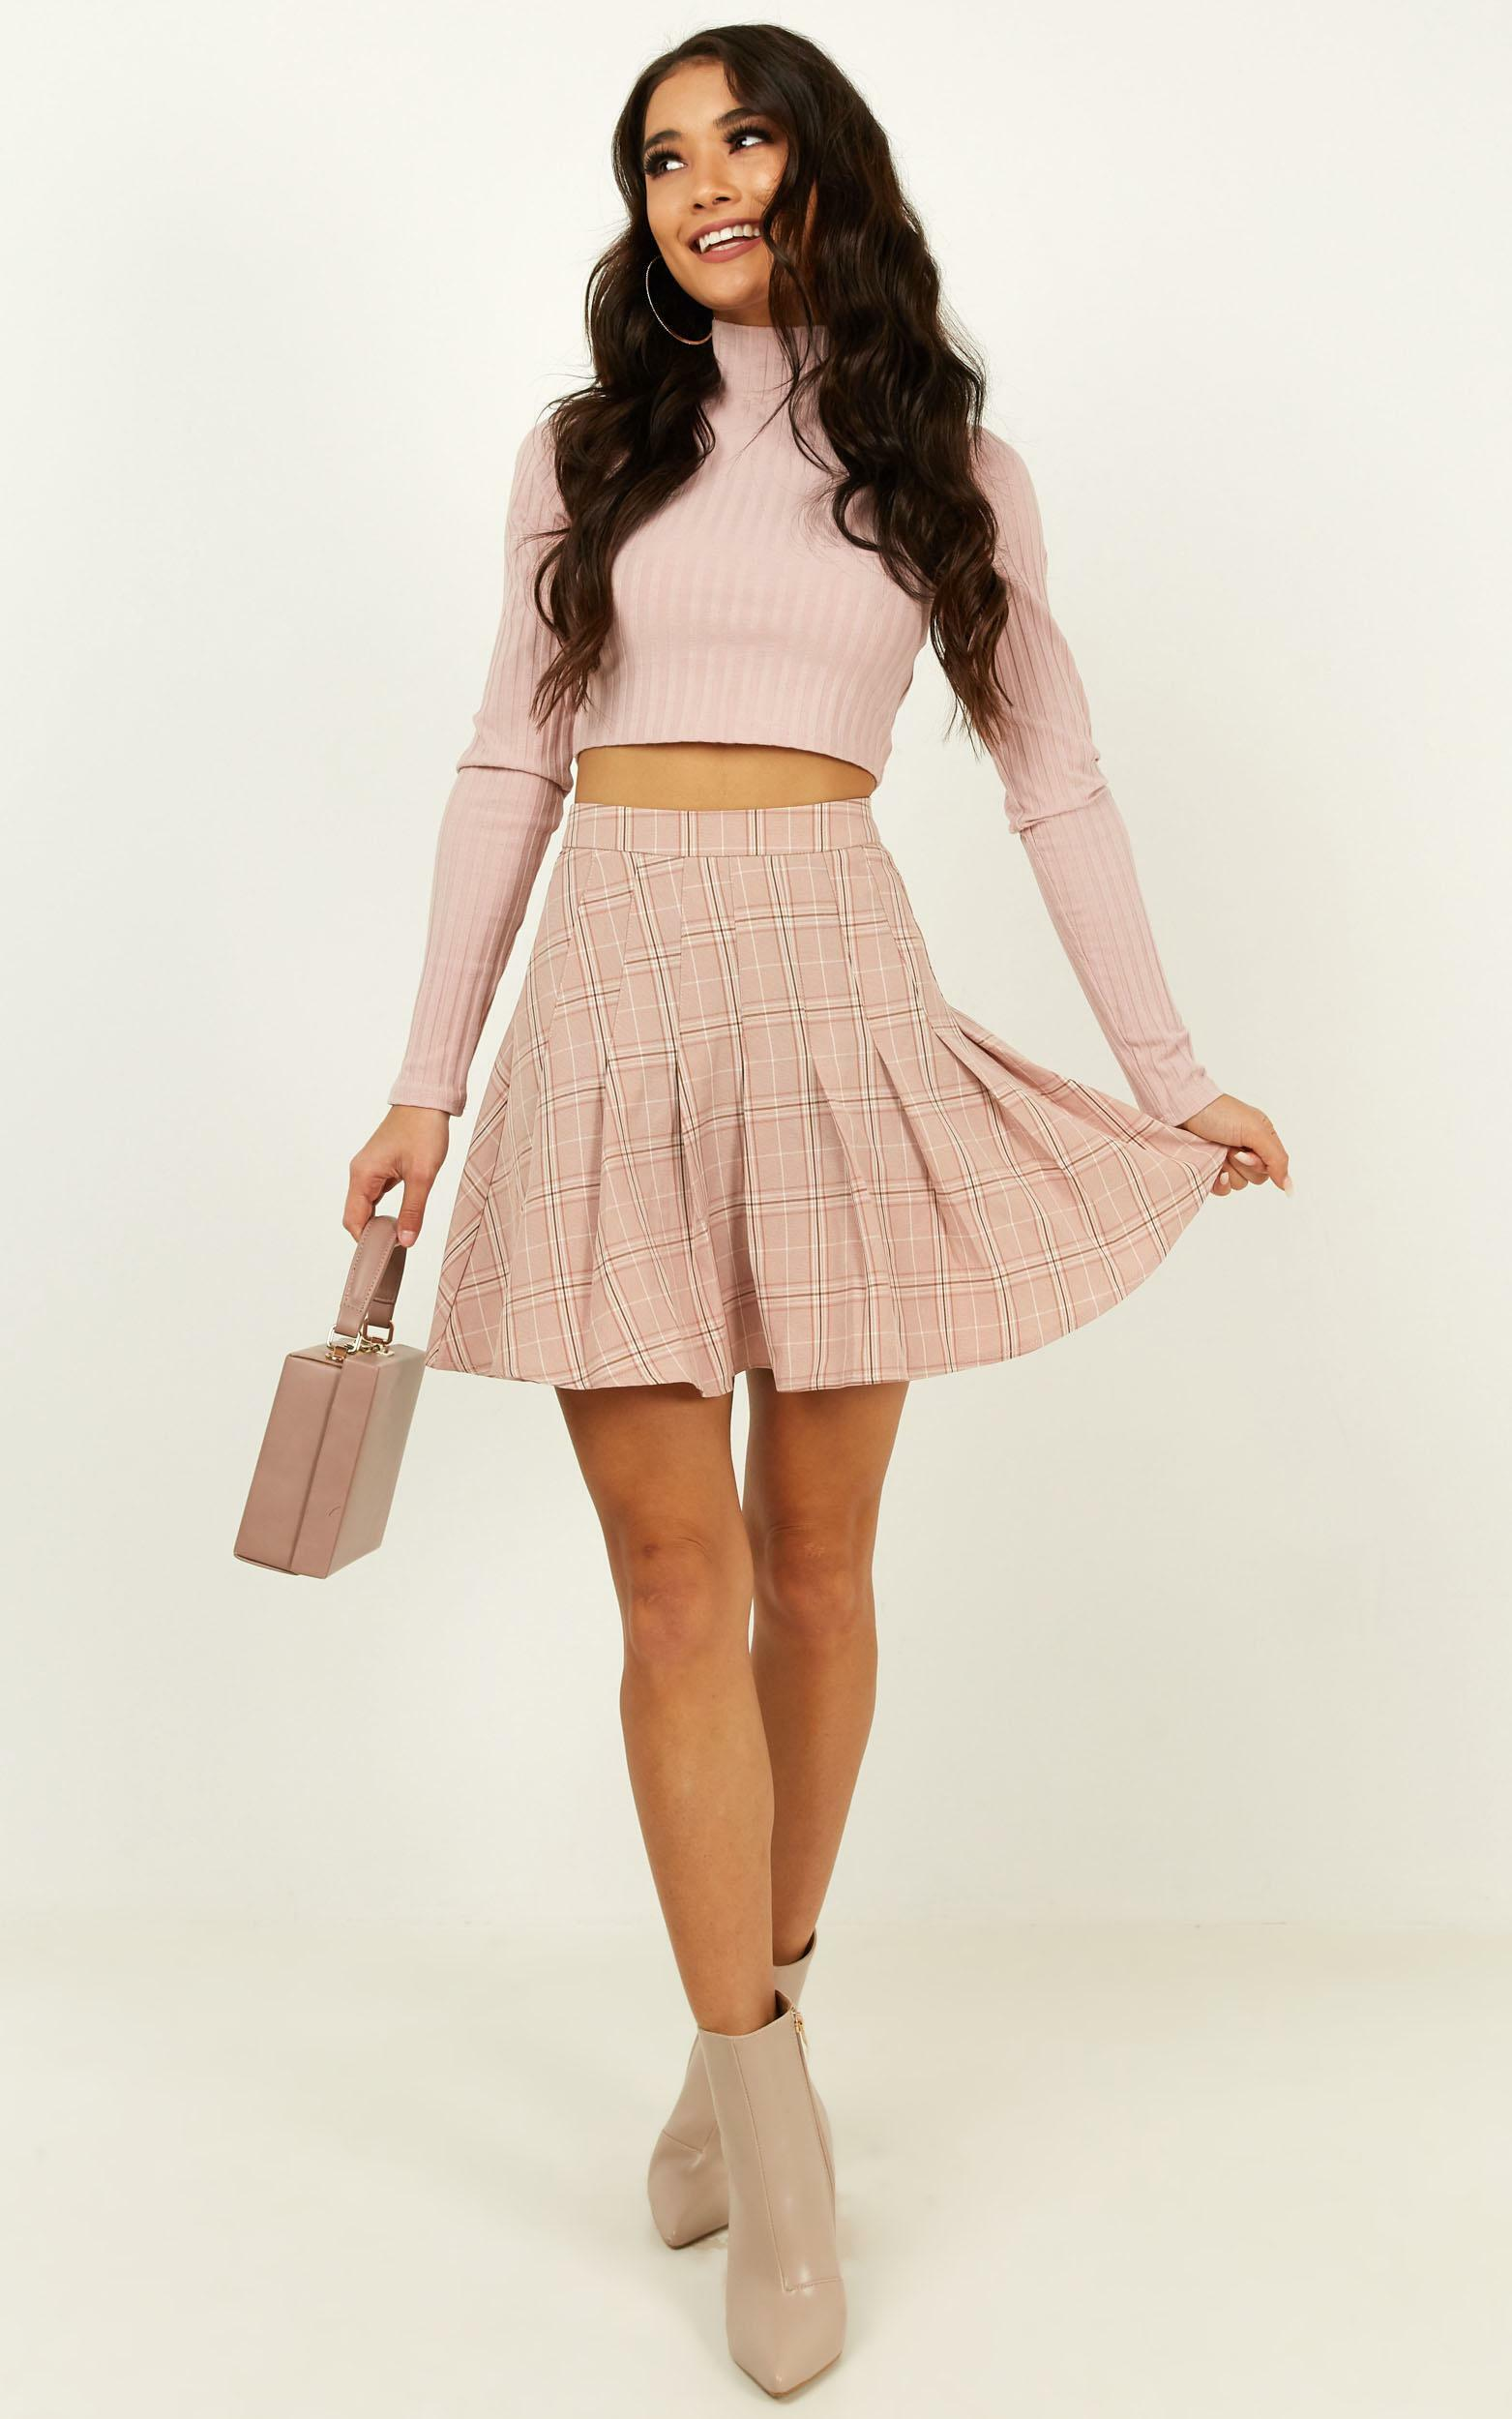 Watching Us Skirt In blush check - 16 (XXL), Blush, hi-res image number null